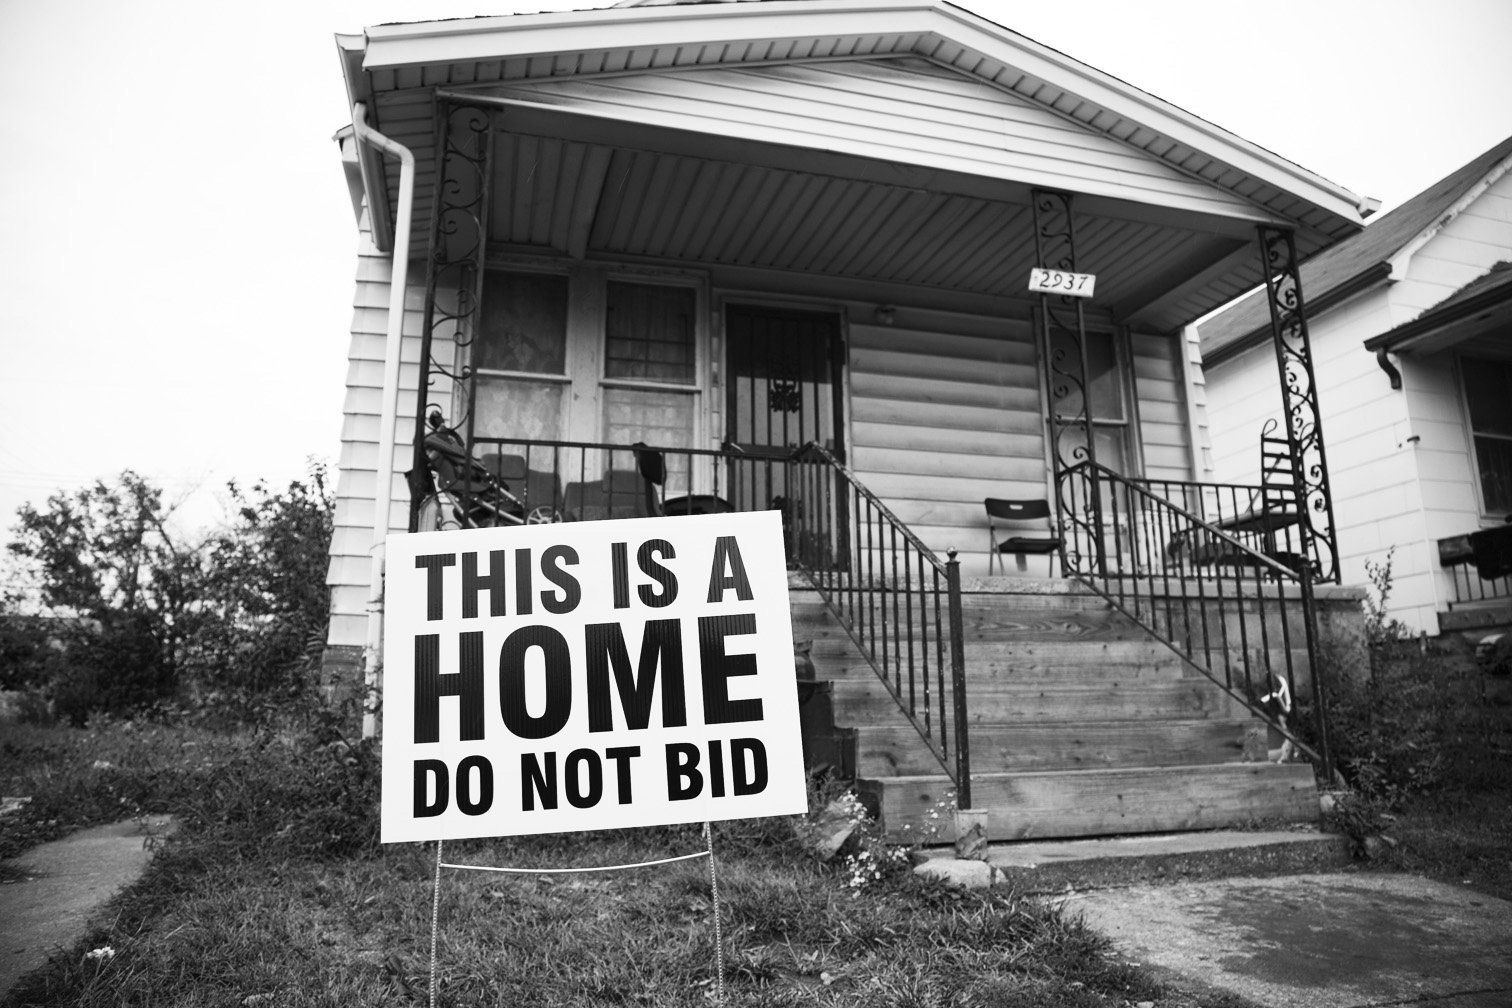 The Tricycle Collective gave families yard signs to dissuade people from bidding on their homes in the auction.